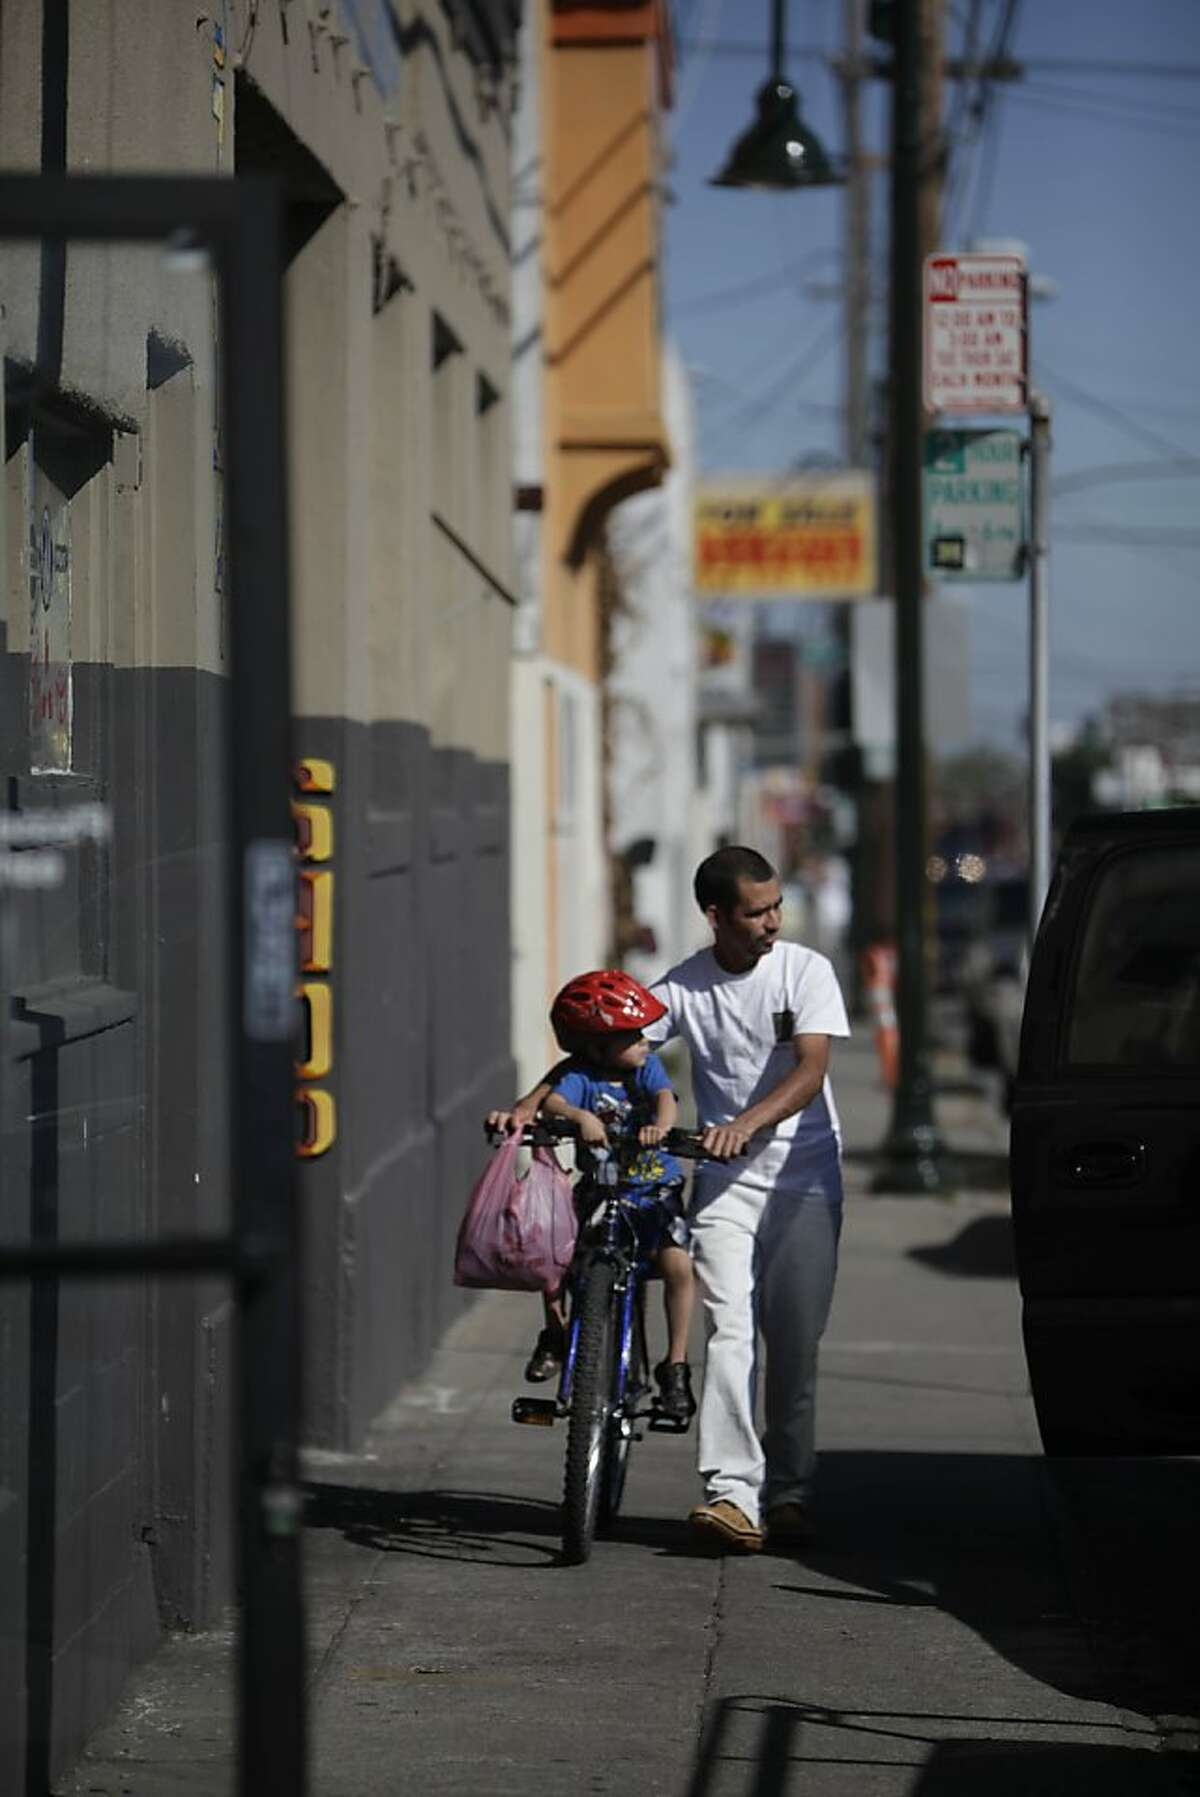 A father holds his son on a bicycle as they walk on Foothill Boulevard between Harrington Avenue and 38th Avenue on Monday, June 11, 2012 in San Francisco, Calif.